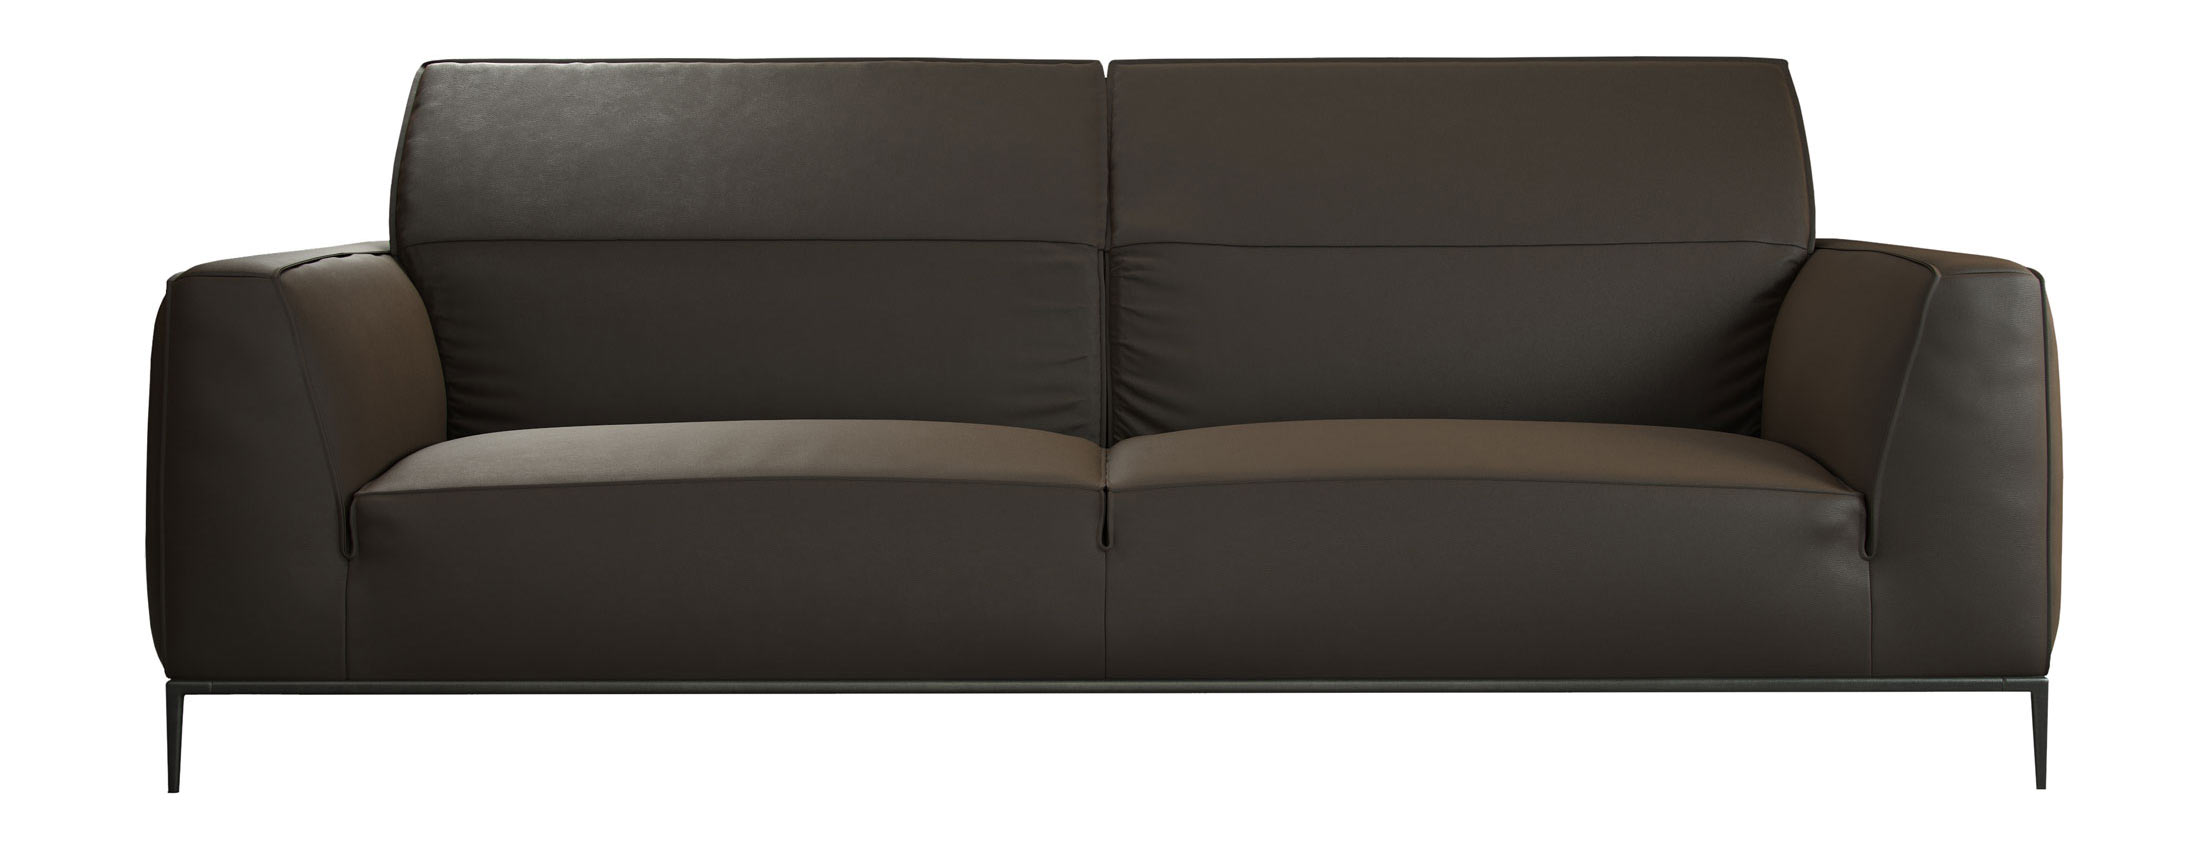 Divani Fendi Prestige Sofa Fendi Taraba Home Review